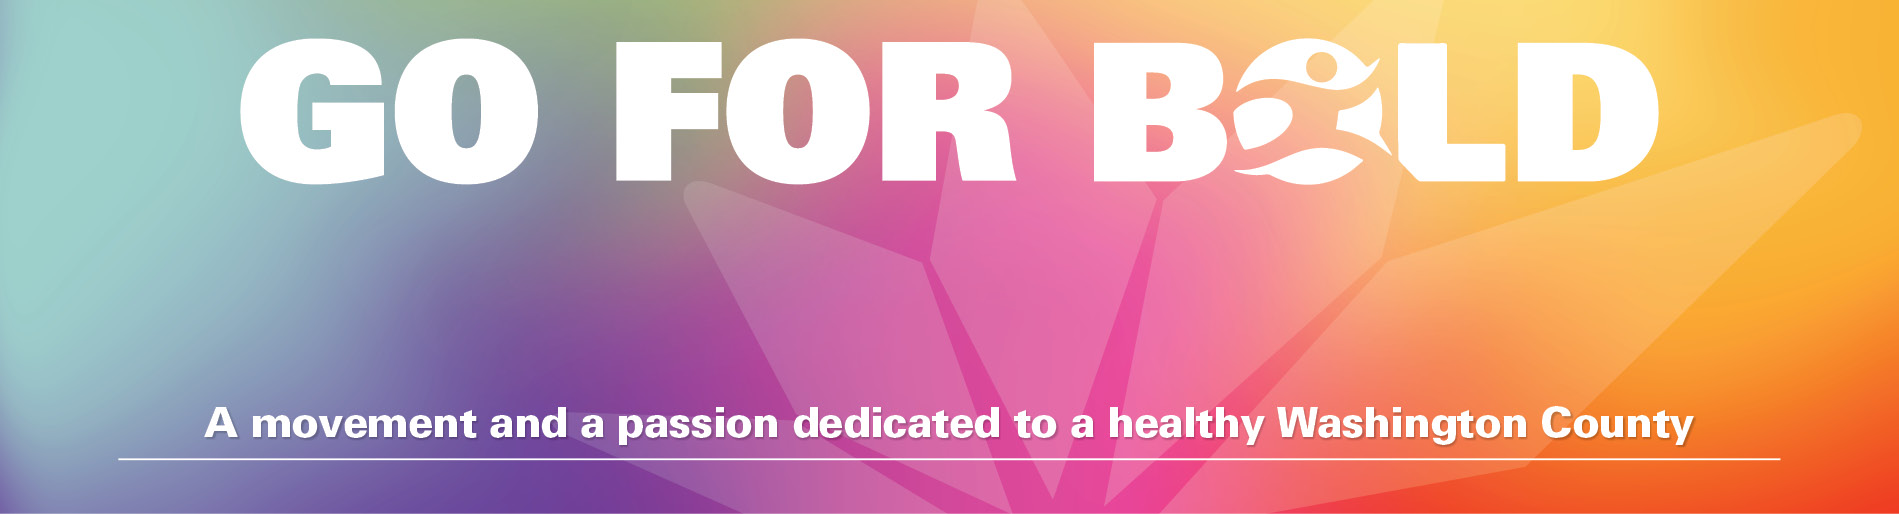 Go For Bold a movement and a passion dedicated to a healthy Washington county